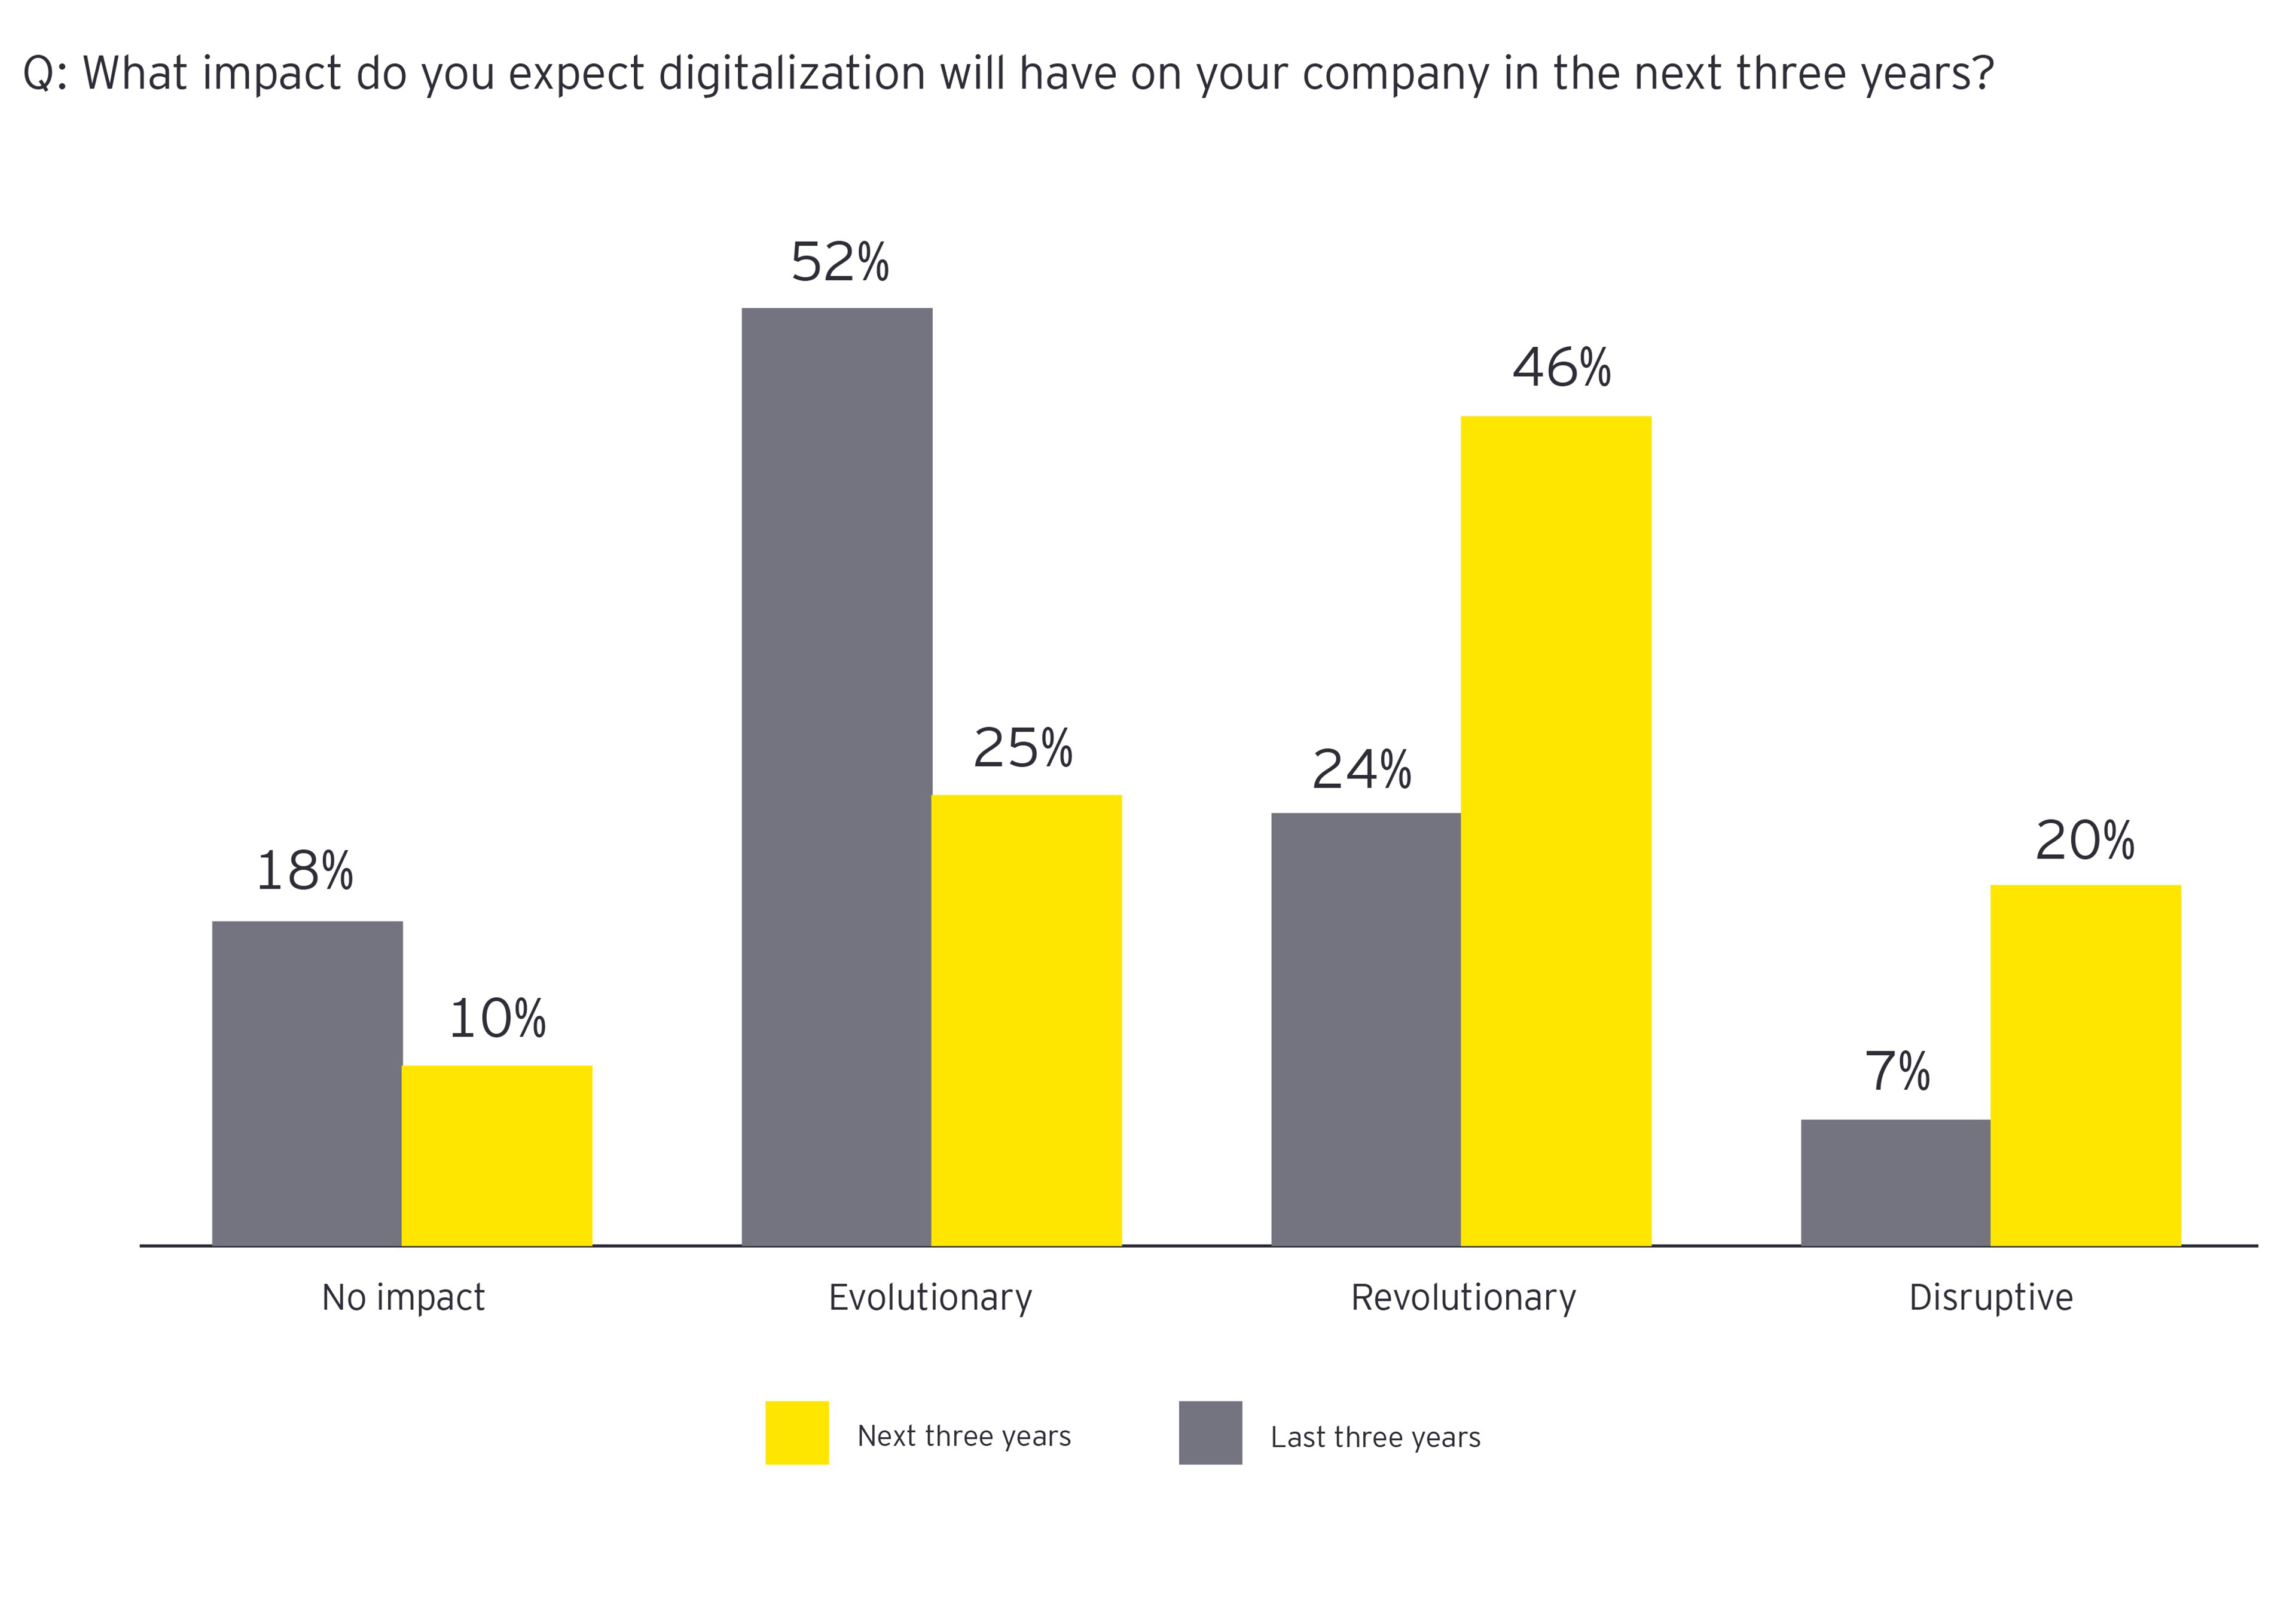 What impact do you expect digitalization will have on your company in the next 3 years